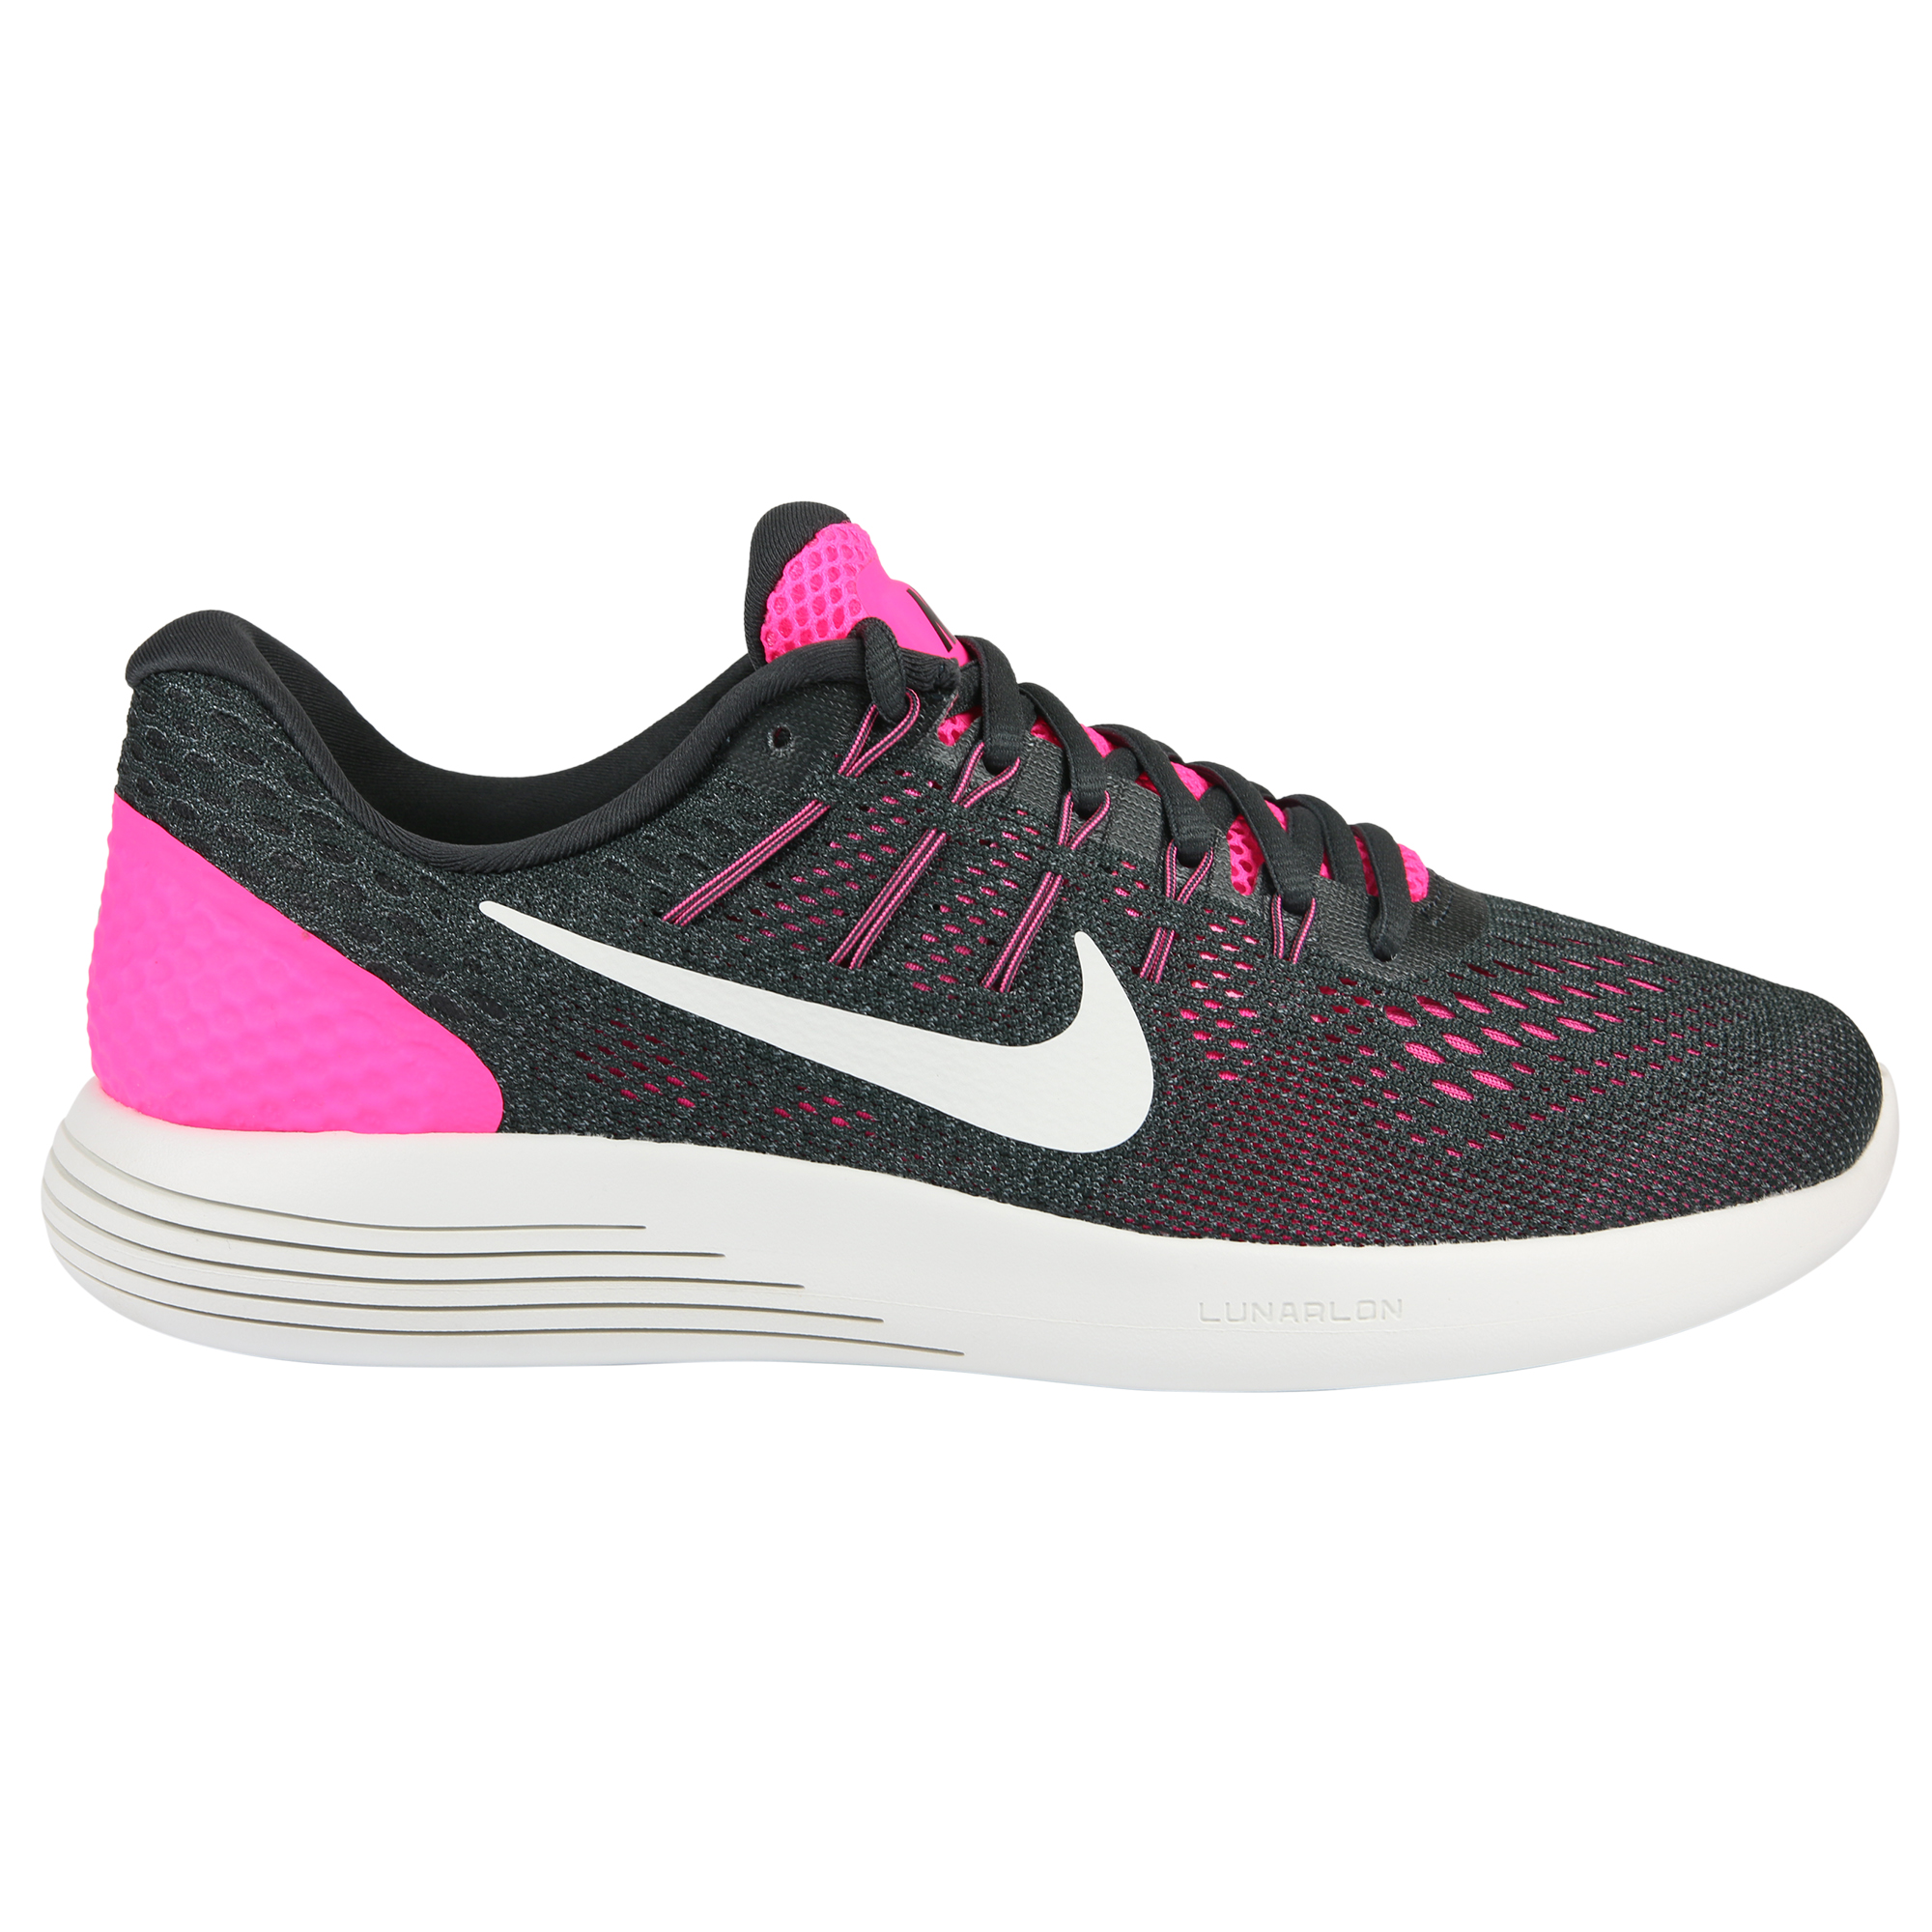 nike lunarglide 8 schuhe laufschuhe joggingschuhe. Black Bedroom Furniture Sets. Home Design Ideas